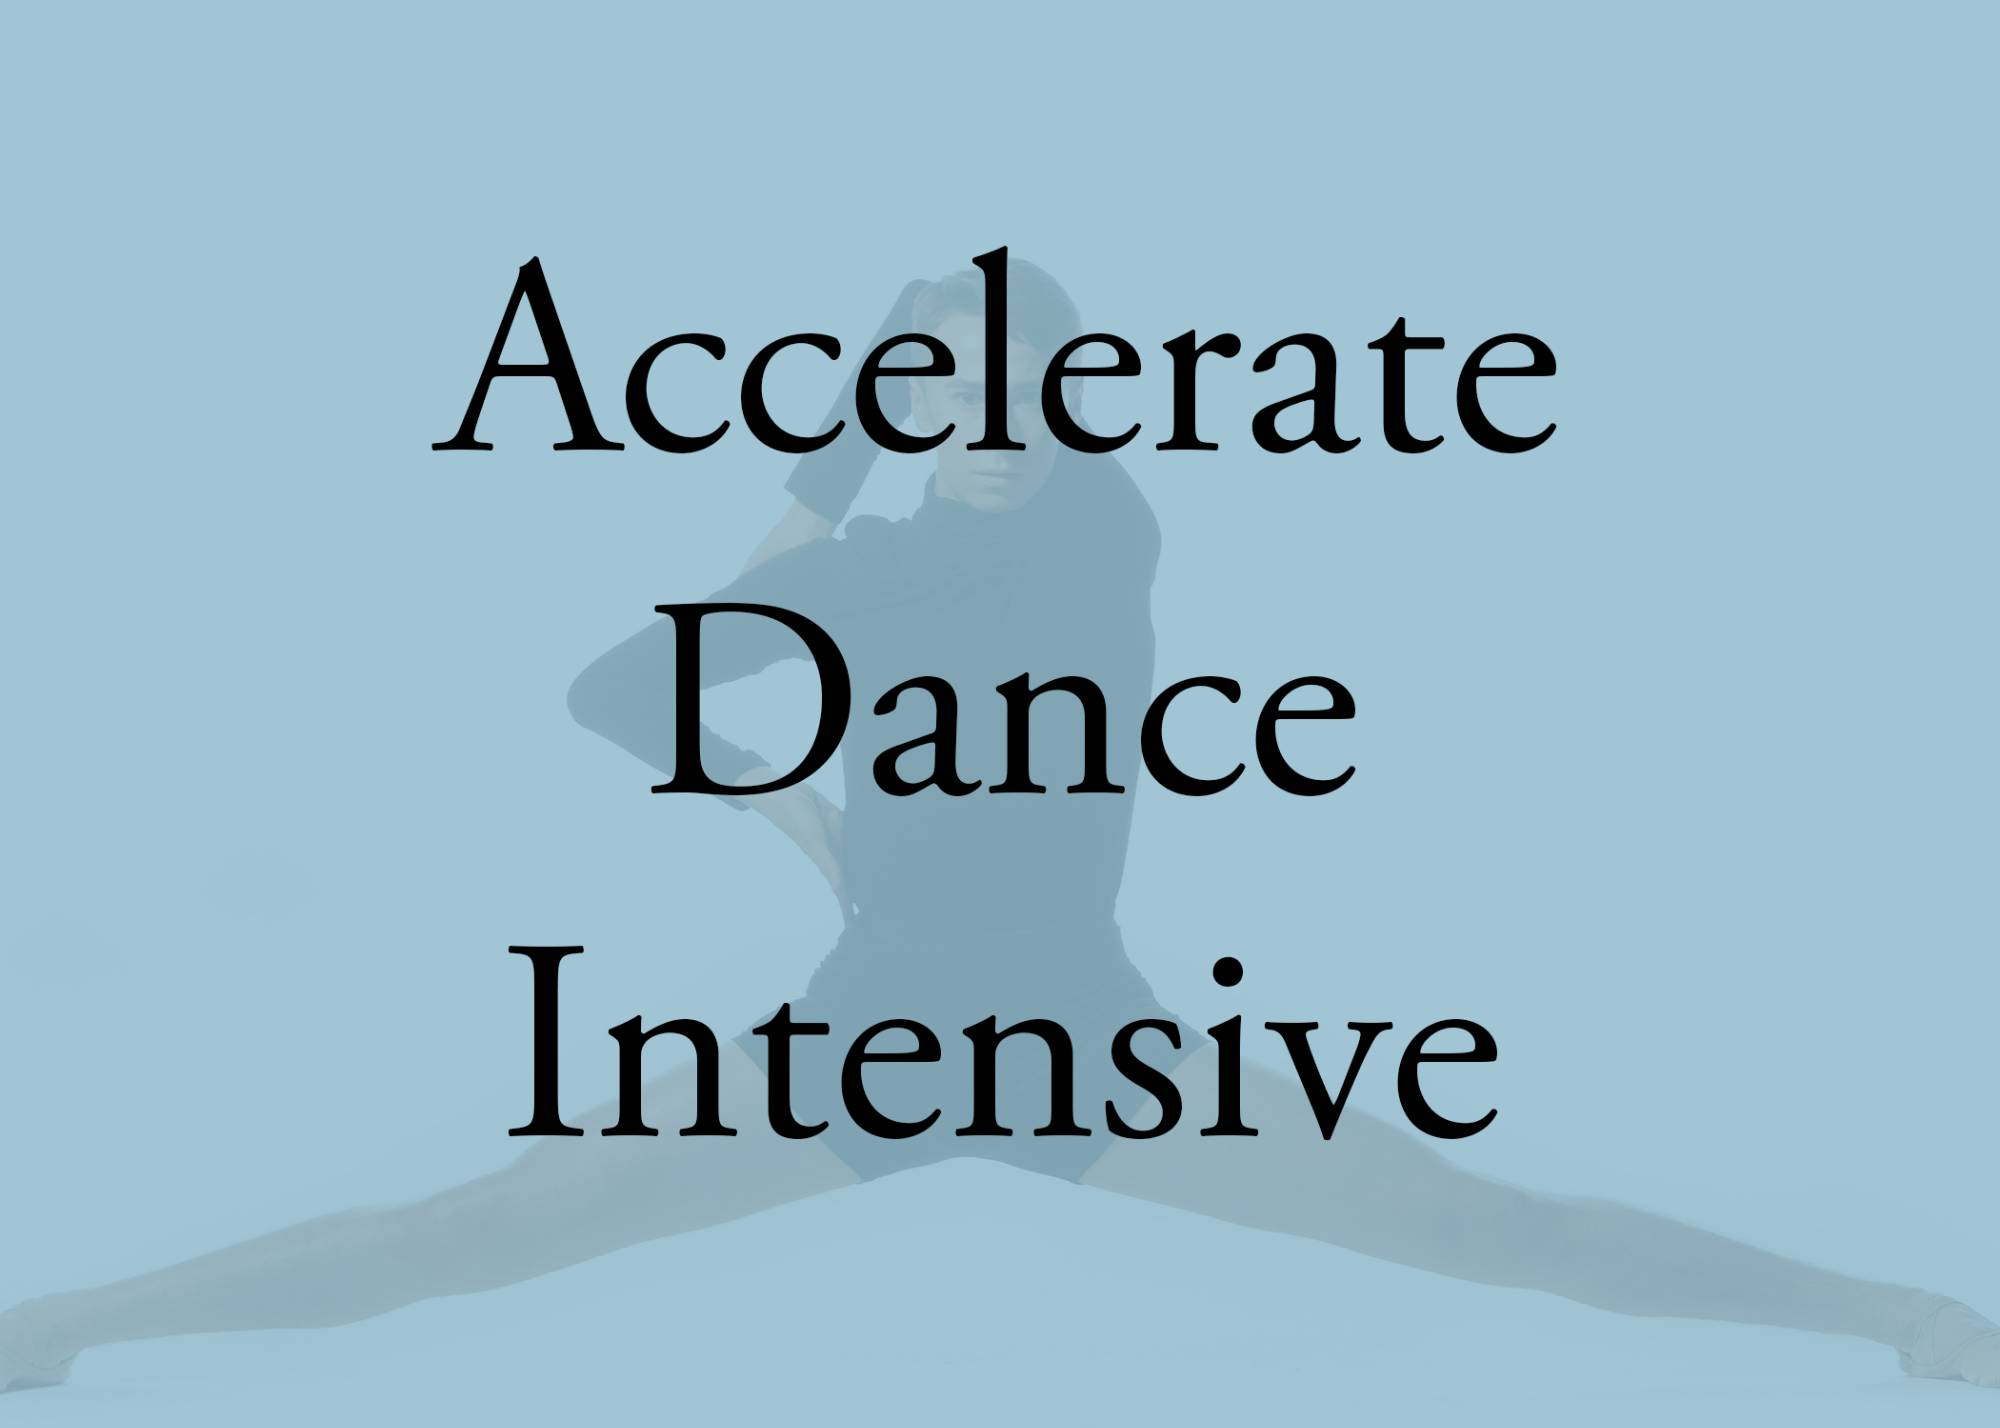 accelerate dance intensive button